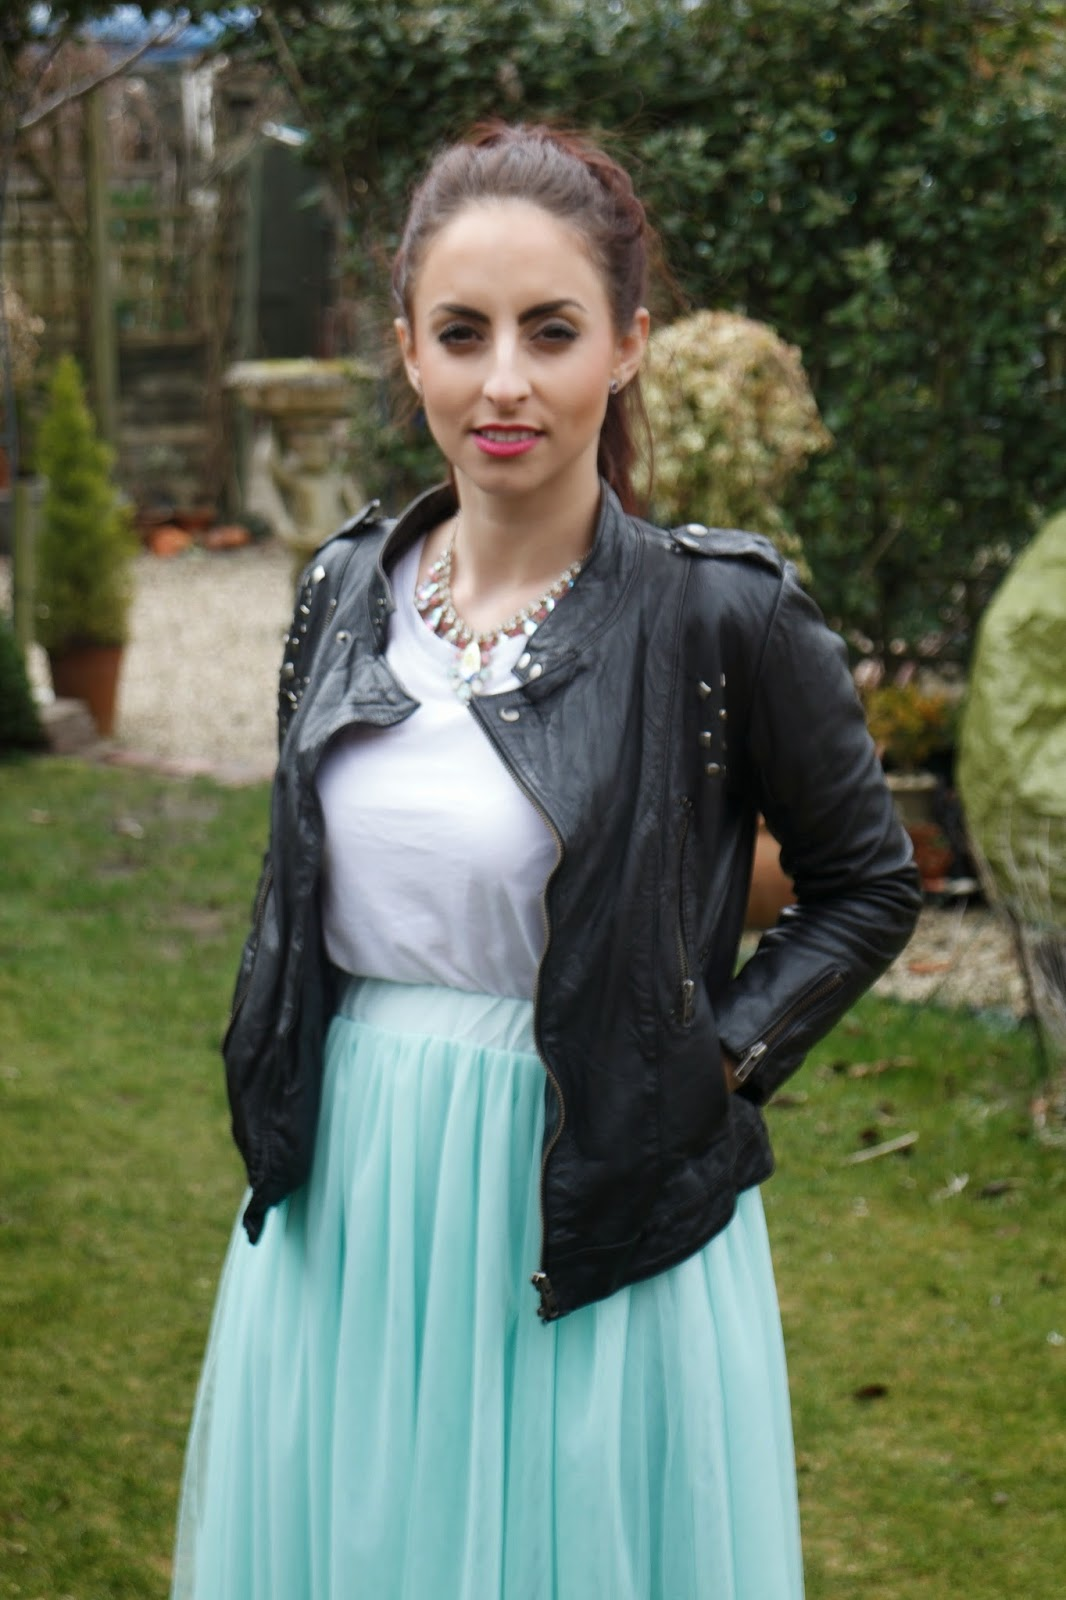 disney princess, tulle skirt, ebay fashion, ootd, street style, leather, how to wear tuille, asos,